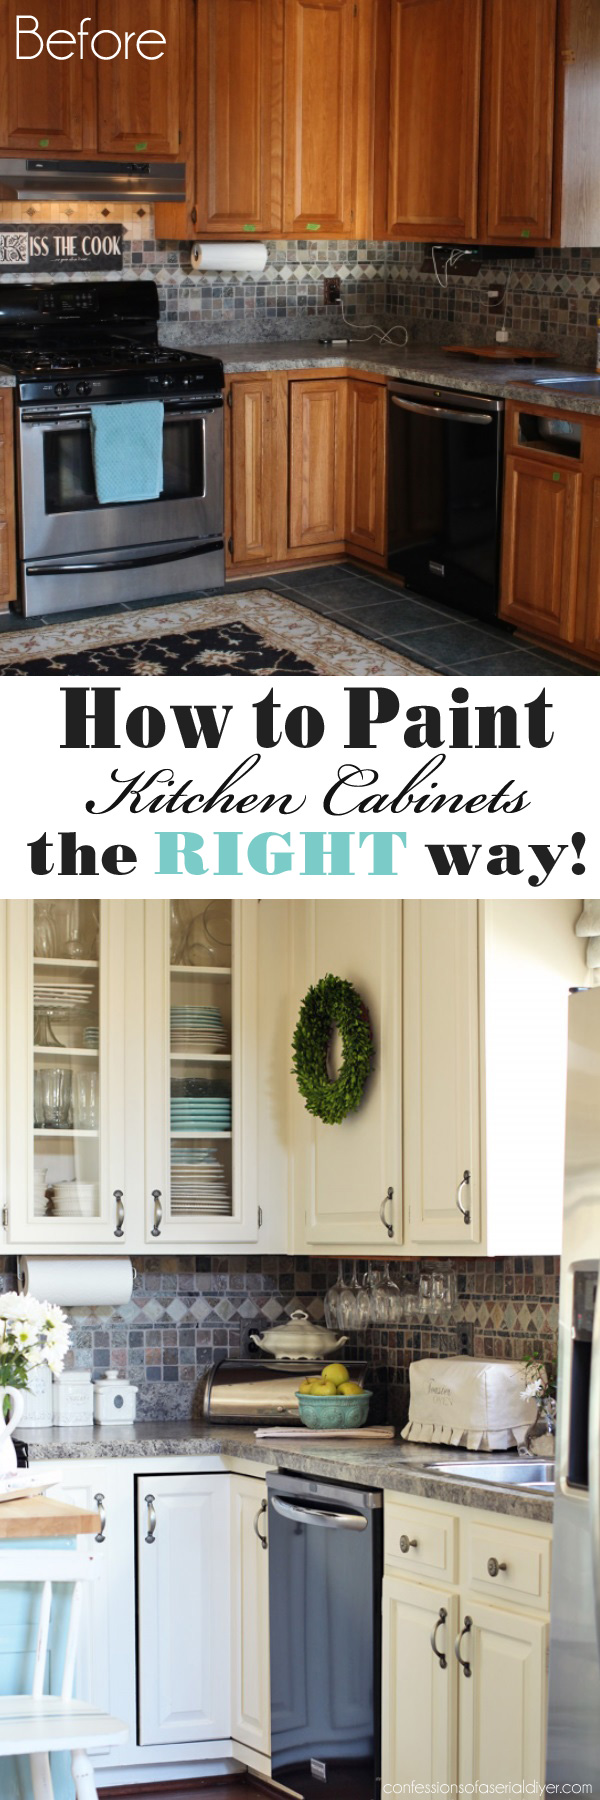 how to paint kitchen cabinets a step by step guide cabinets for kitchen How to Paint Kitchen Cabinets the RIGHT way from Confessions of a Serial Do it